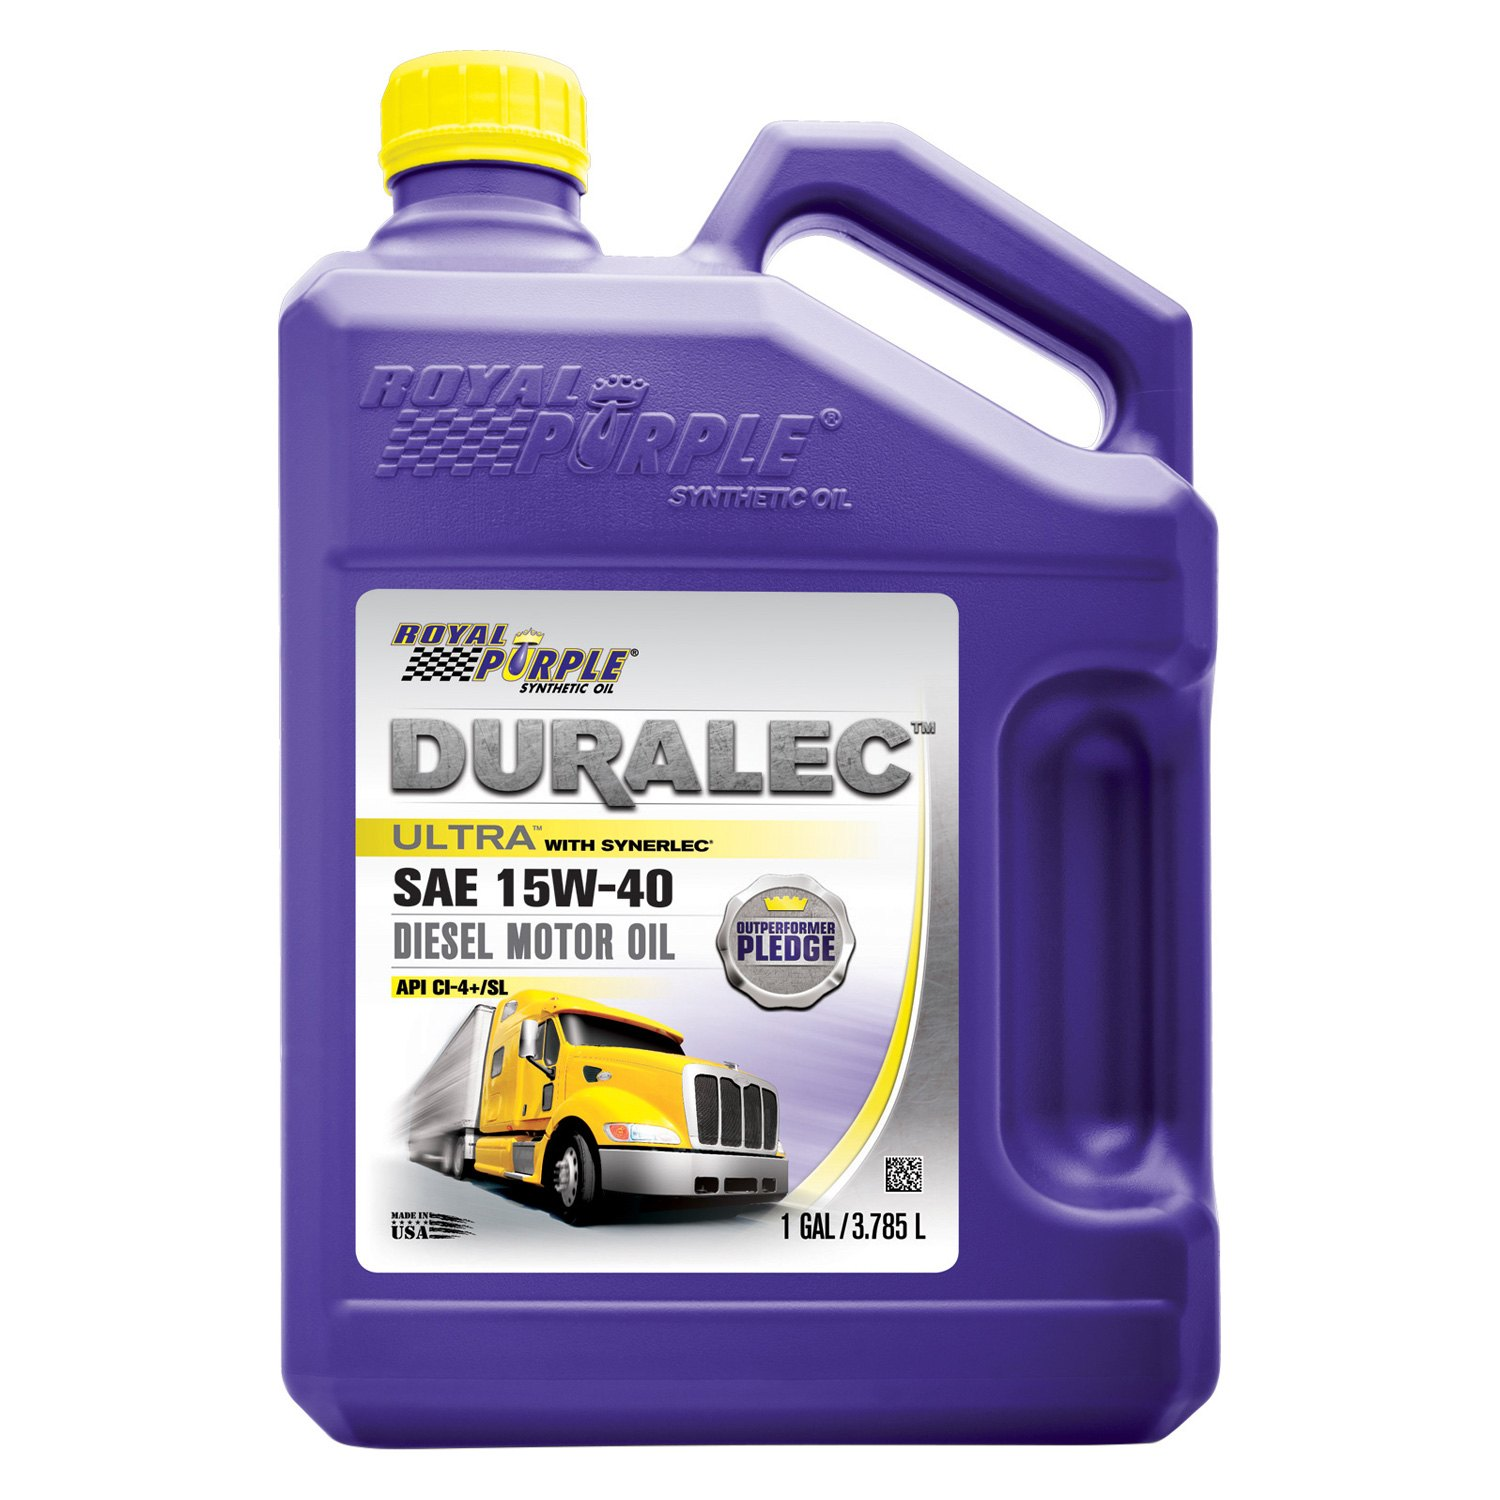 Royal purple 83561 duralec ultra sae 15w 40 high for Gallon of motor oil